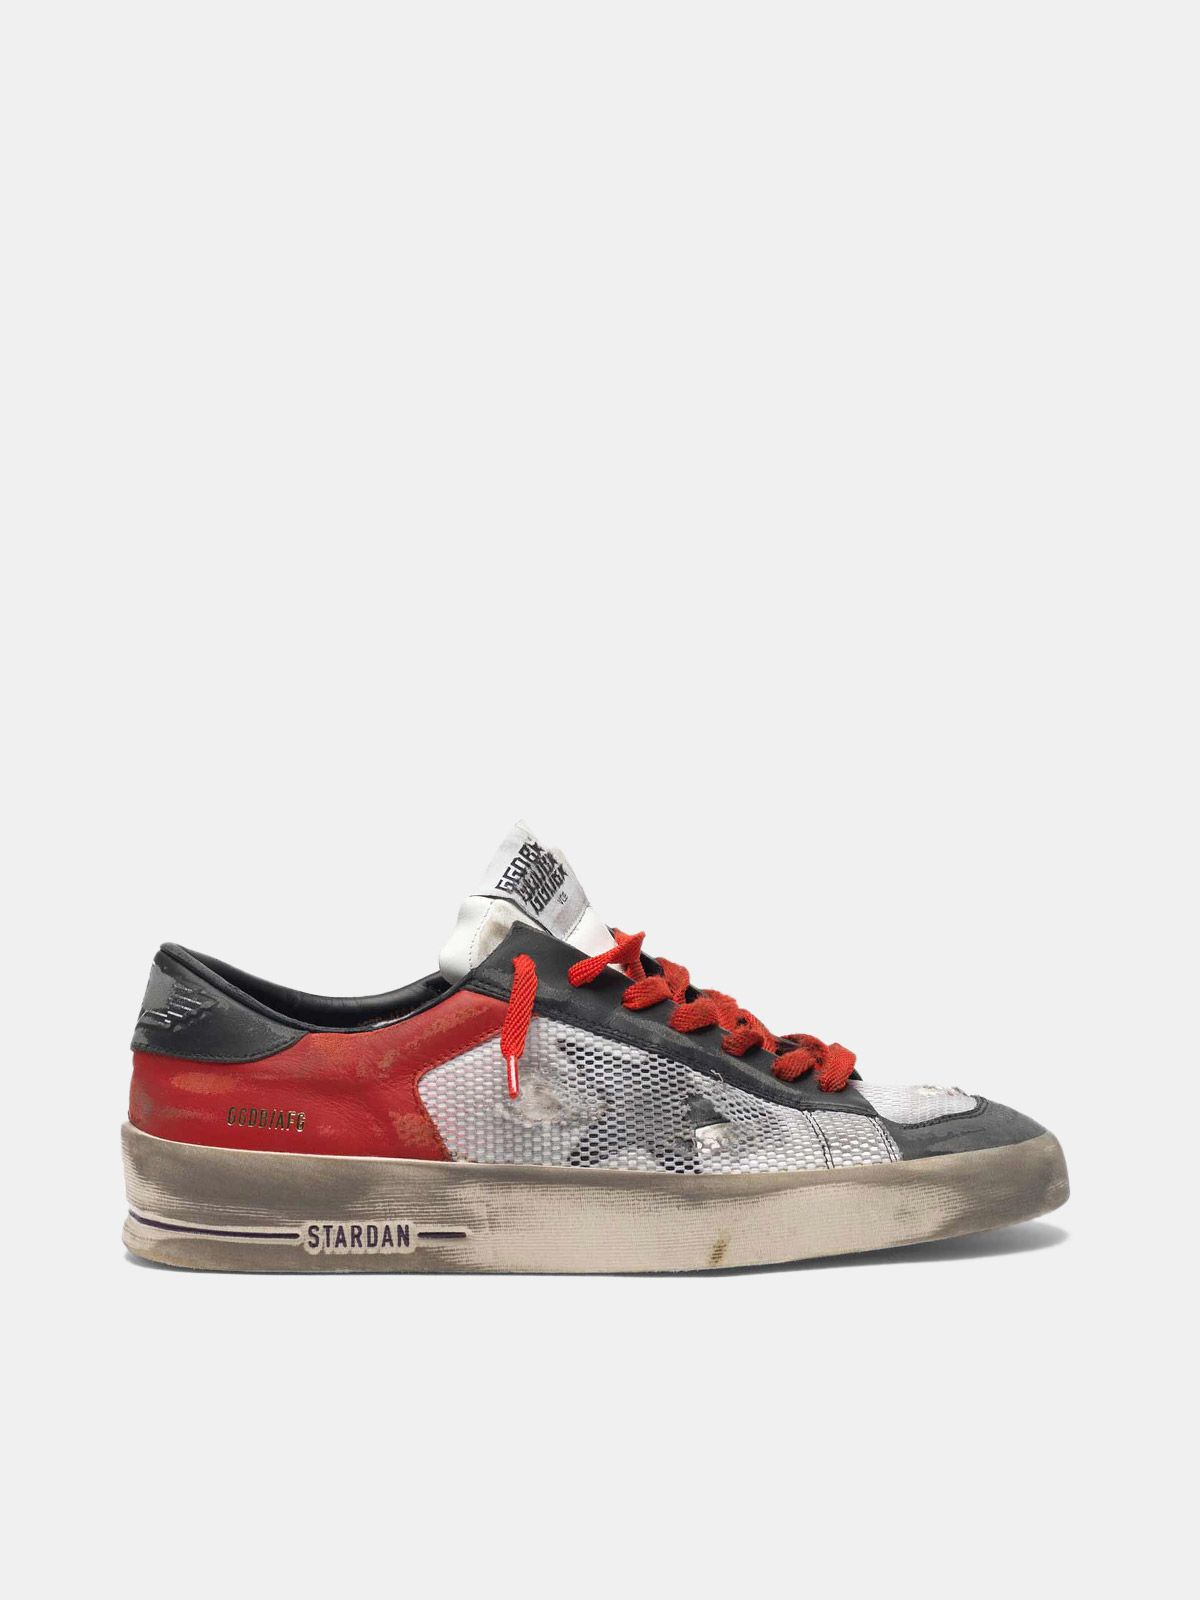 Golden Goose - Stardan LTD sneakers in leather with distressed mesh inserts  in